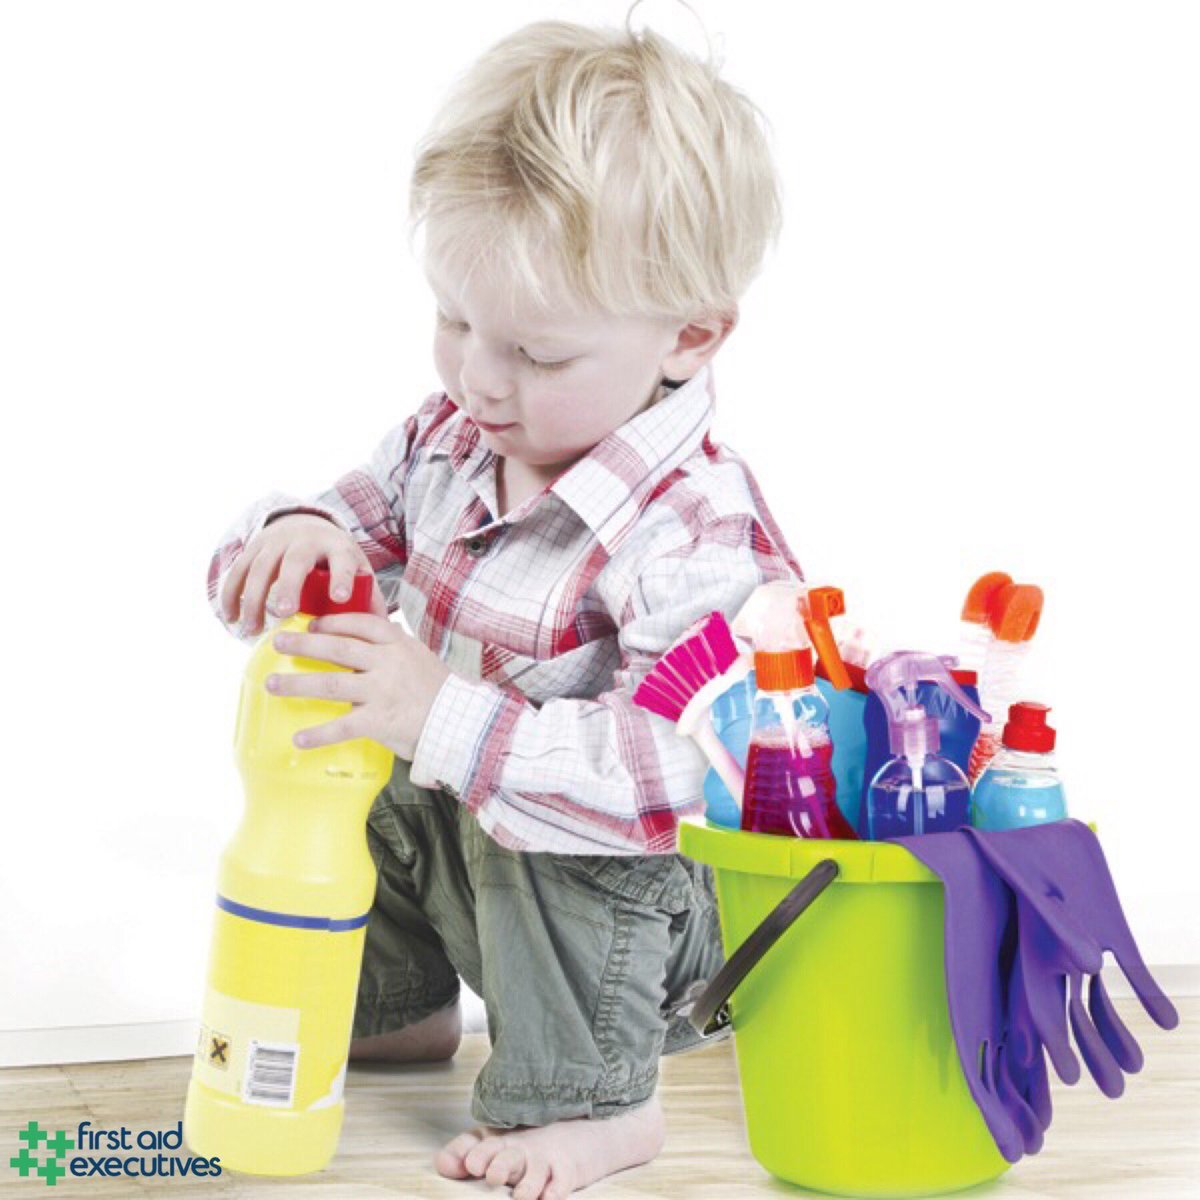 Where do you store your household products? Keep them safe and away from children.  Enquire now http://www.firstaidexecutives.co.uk @firstaidexecs  0800 1244 634  #firstaidexecutives #firstaid #training #firstaidcourse #firstaidtraining #courses #course #chemicals #hazardpic.twitter.com/4h09uVOqr4